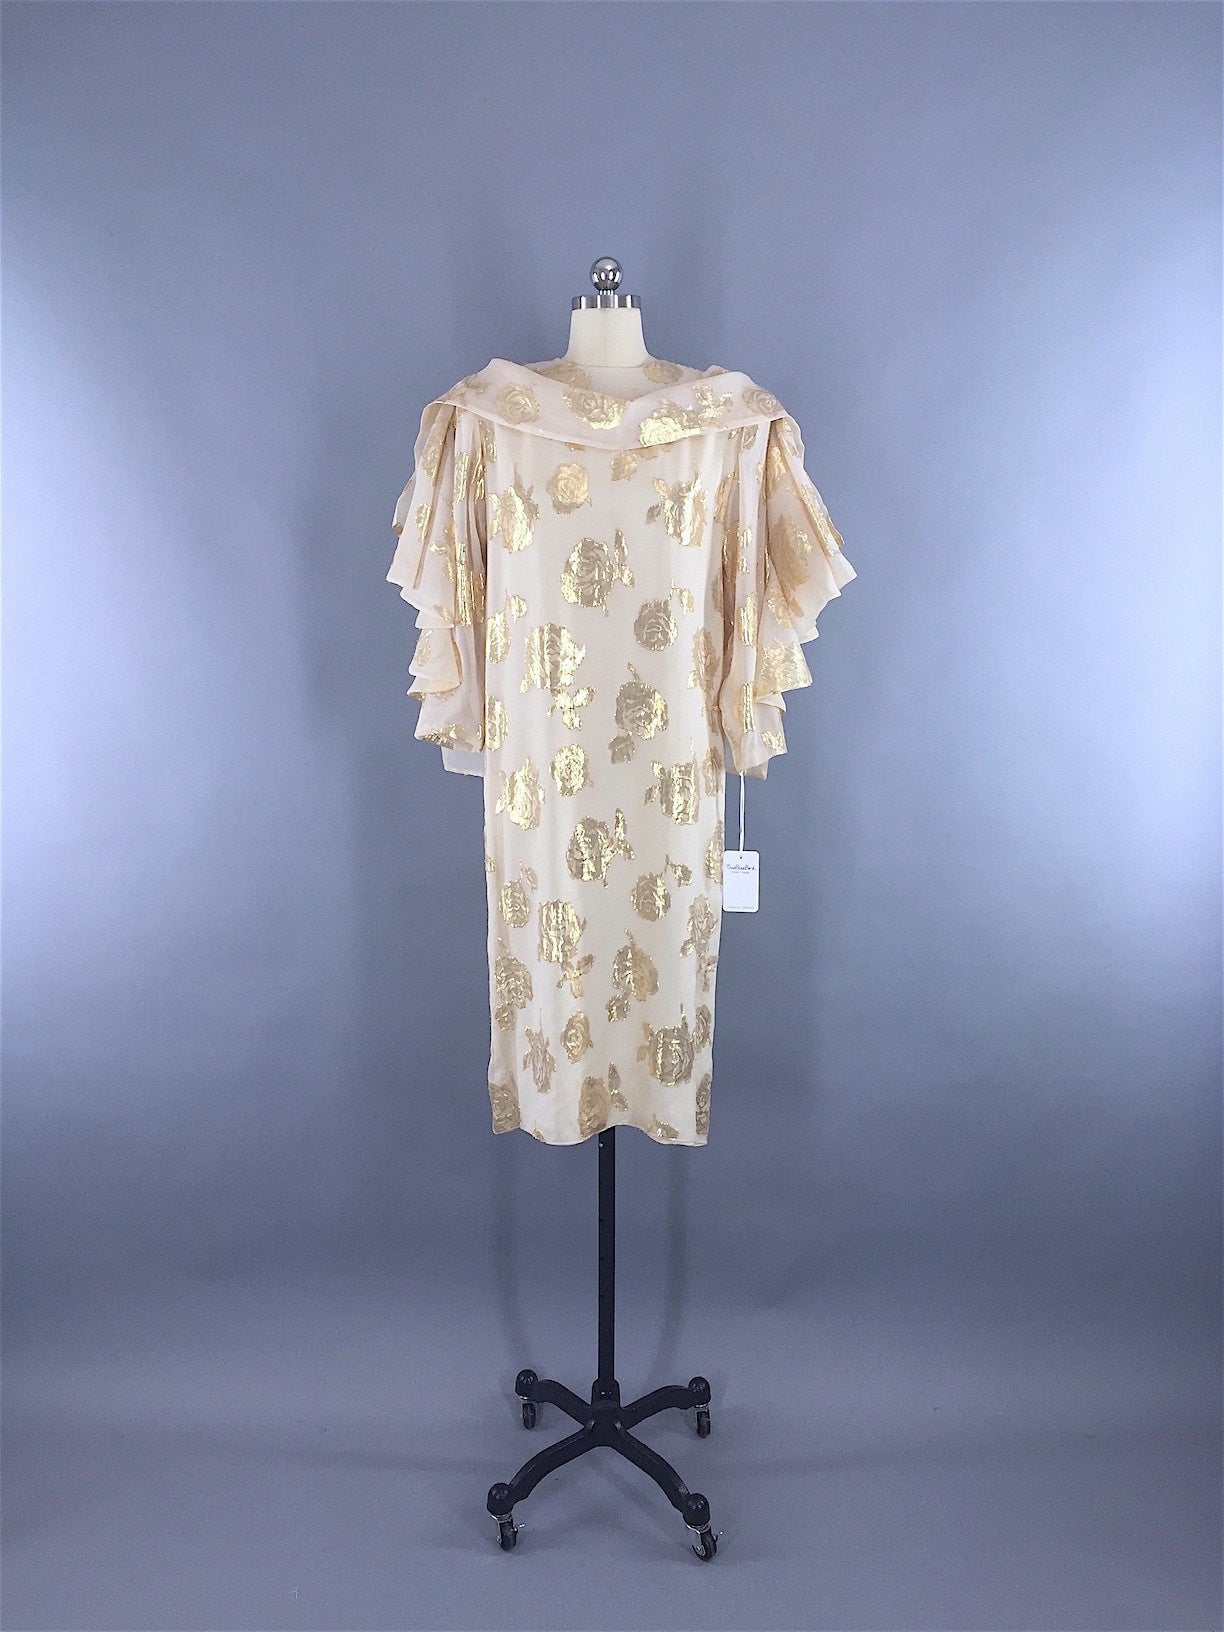 1970s - 1980s Vintage HANAE MORI Designer Dress in Ivory Chiffon with Gold Roses Dress ThisBlueBIrd